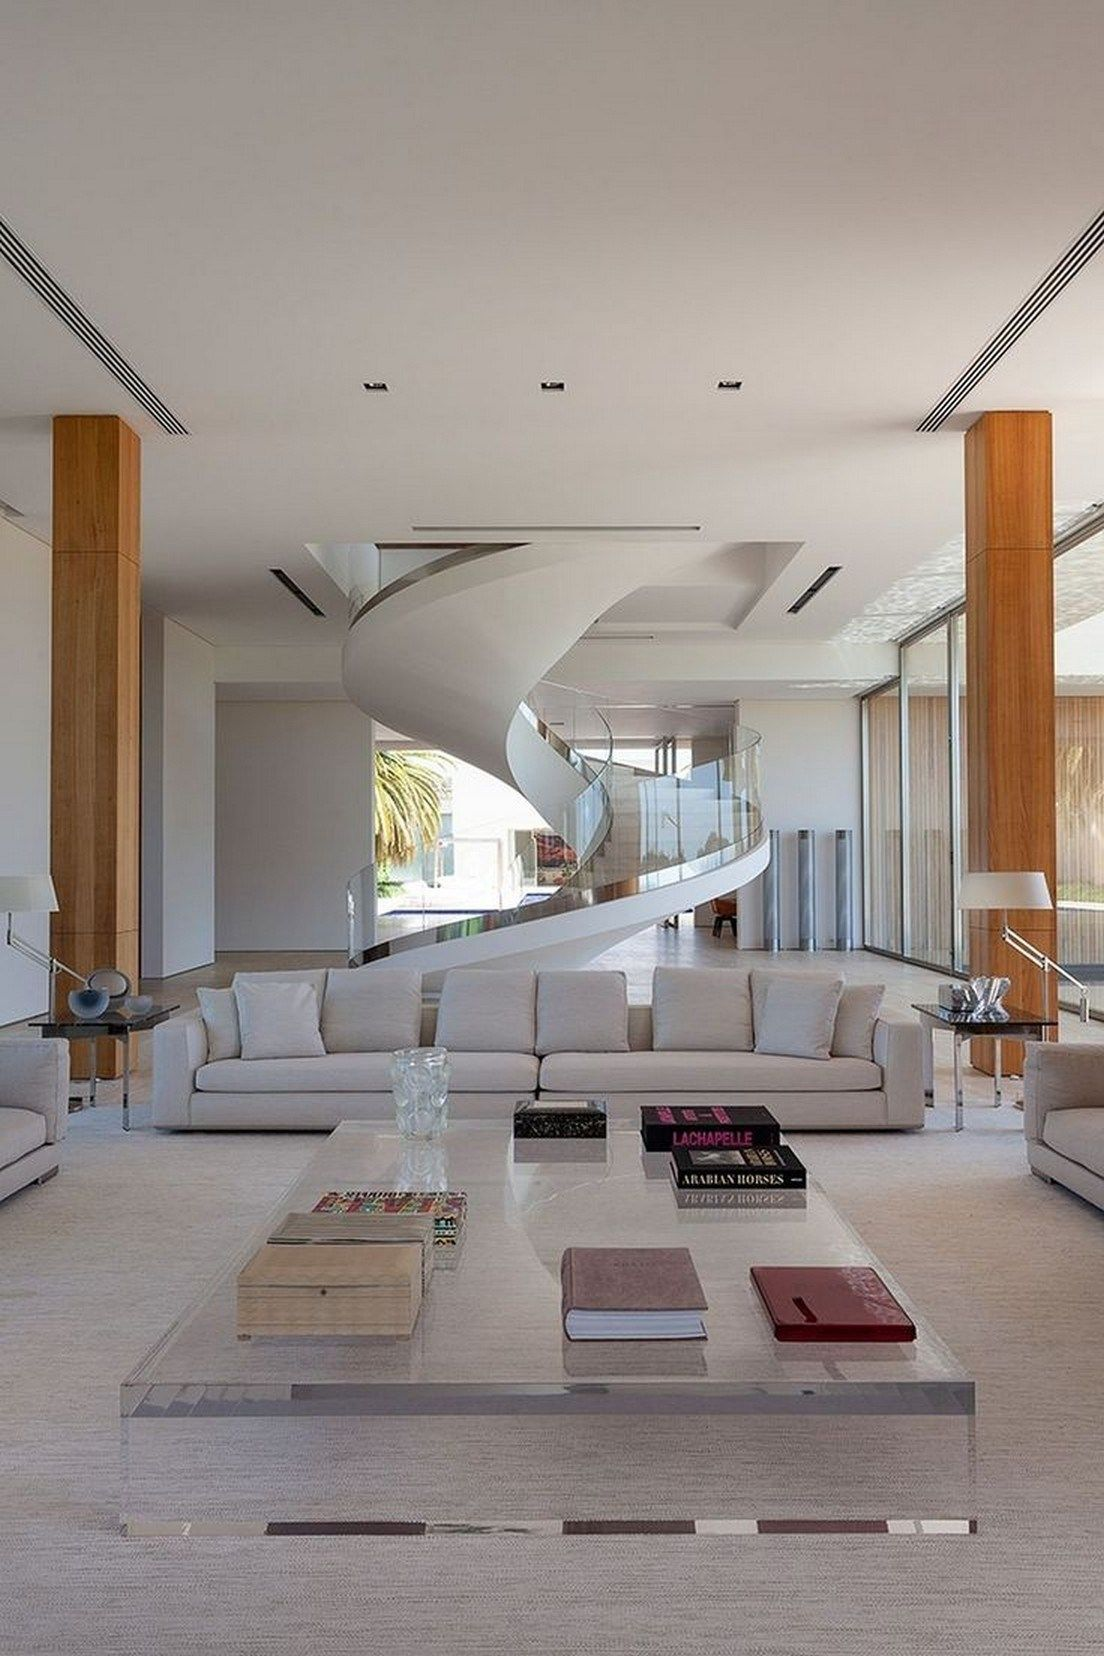 43 The Most Unique Modern Home Design In The World 2019 2 Living Room Design Modern Minimalist House Design Contemporary House Design